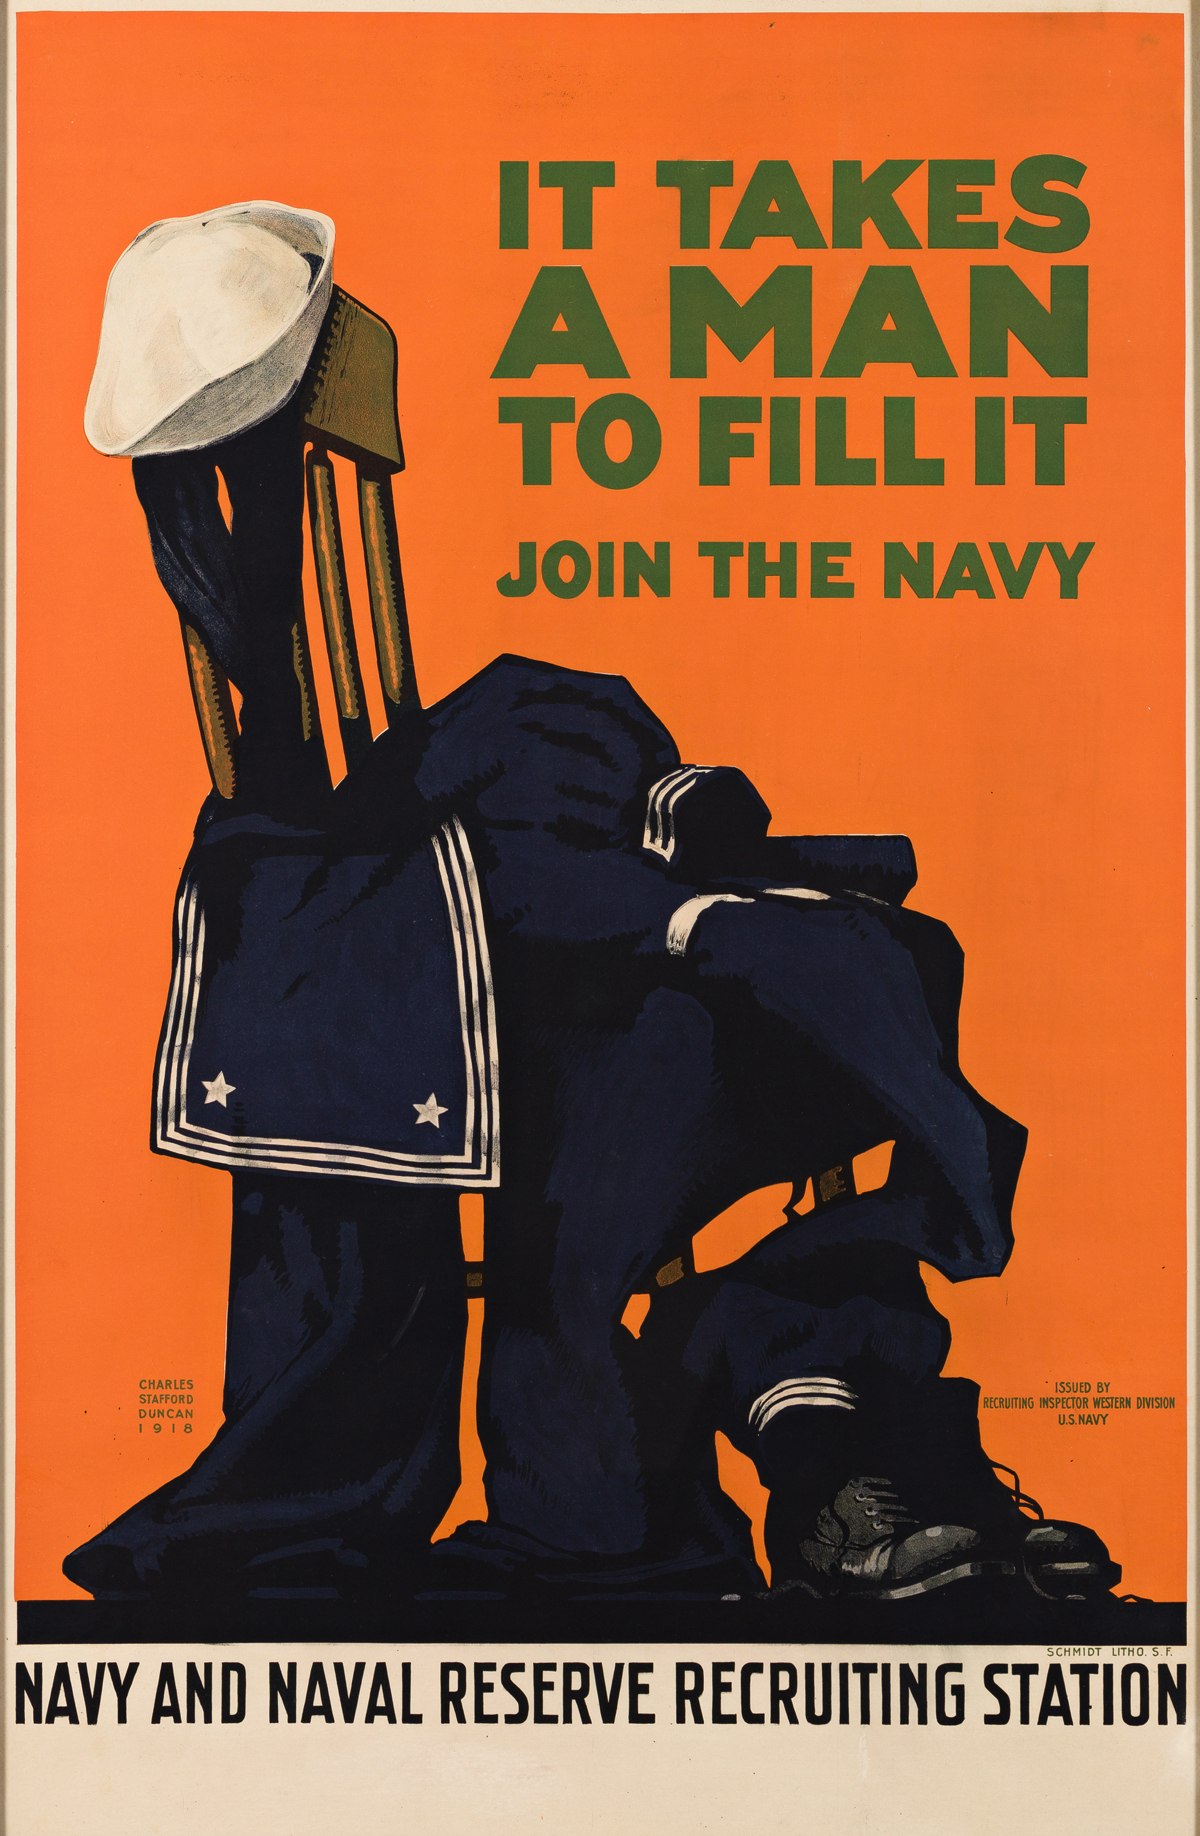 CHARLES STAFFORD DUNCAN (1892-1952).  IT TAKES A MAN TO FILL IT / JOIN THE NAVY. 1918. 40¾x26½ inches, 103½x67¼ cm. Schmidt Litho., San